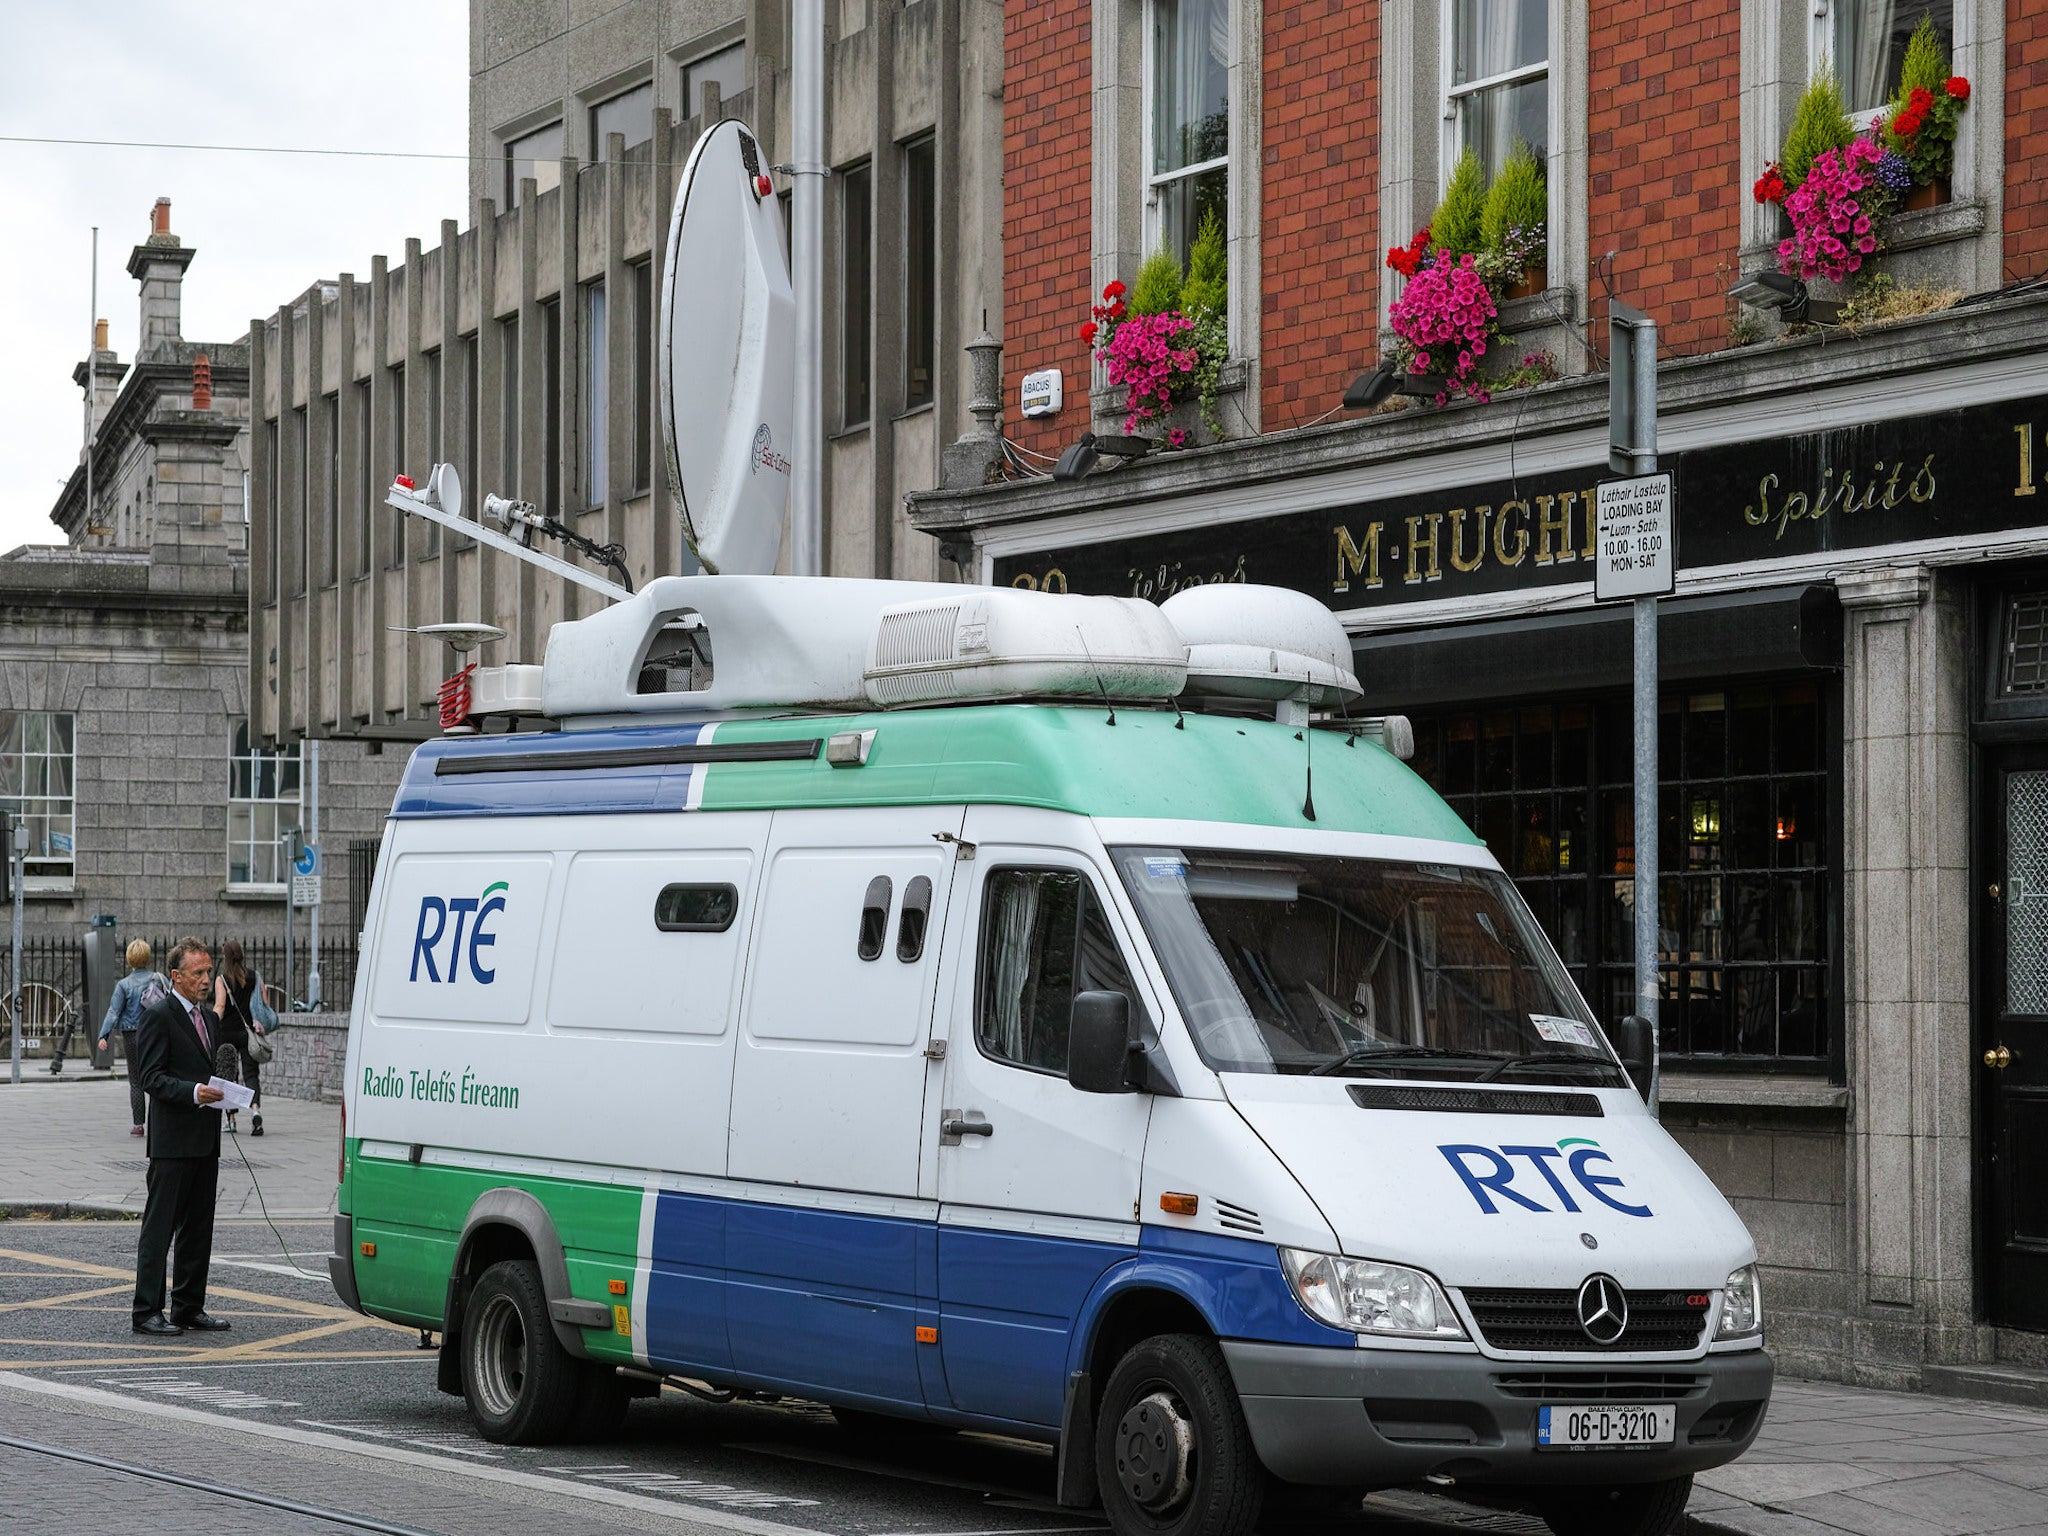 RTÉ Ireland named Broadcaster of the Year at the New York